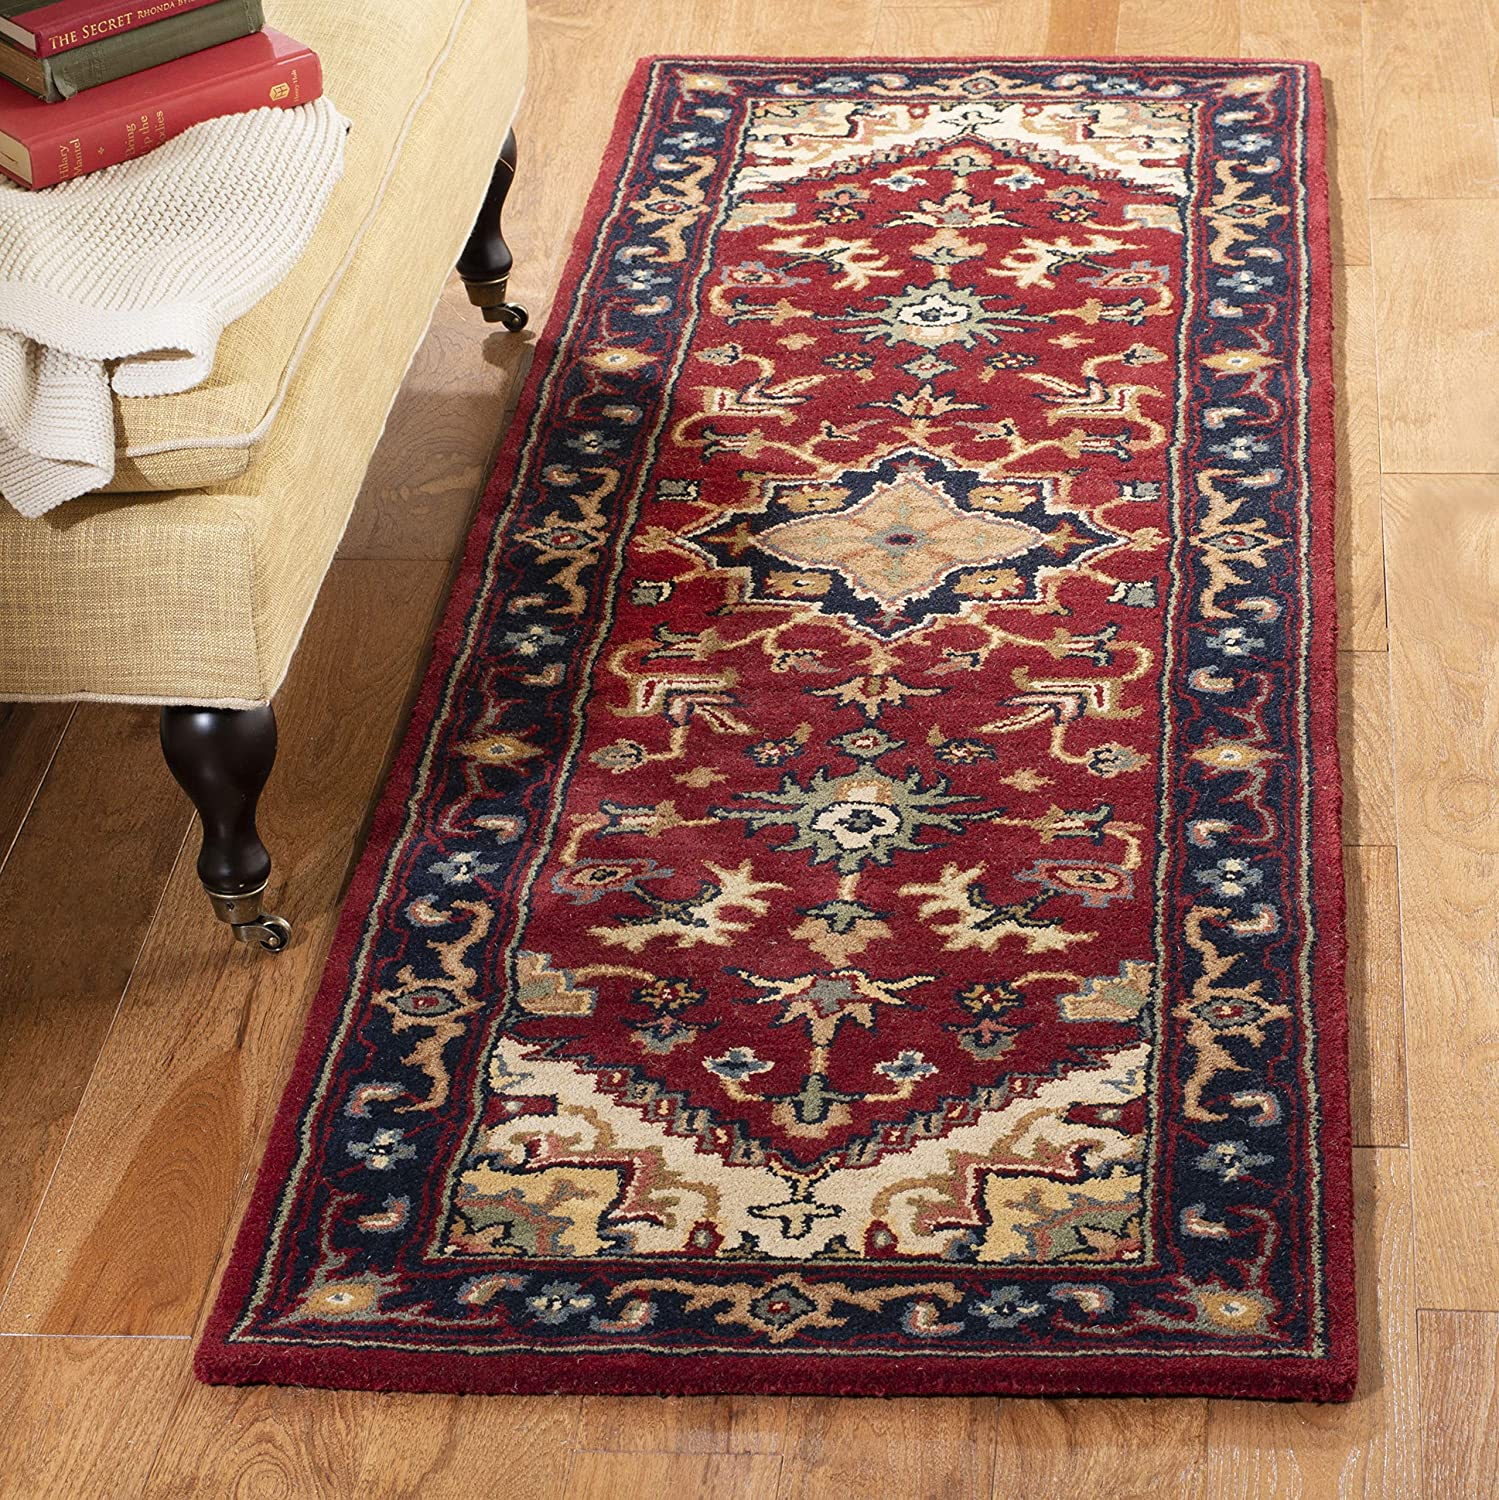 Safavieh Max 49% OFF Heritage Collection HG625A Traditional Handmade Orienta Direct sale of manufacturer